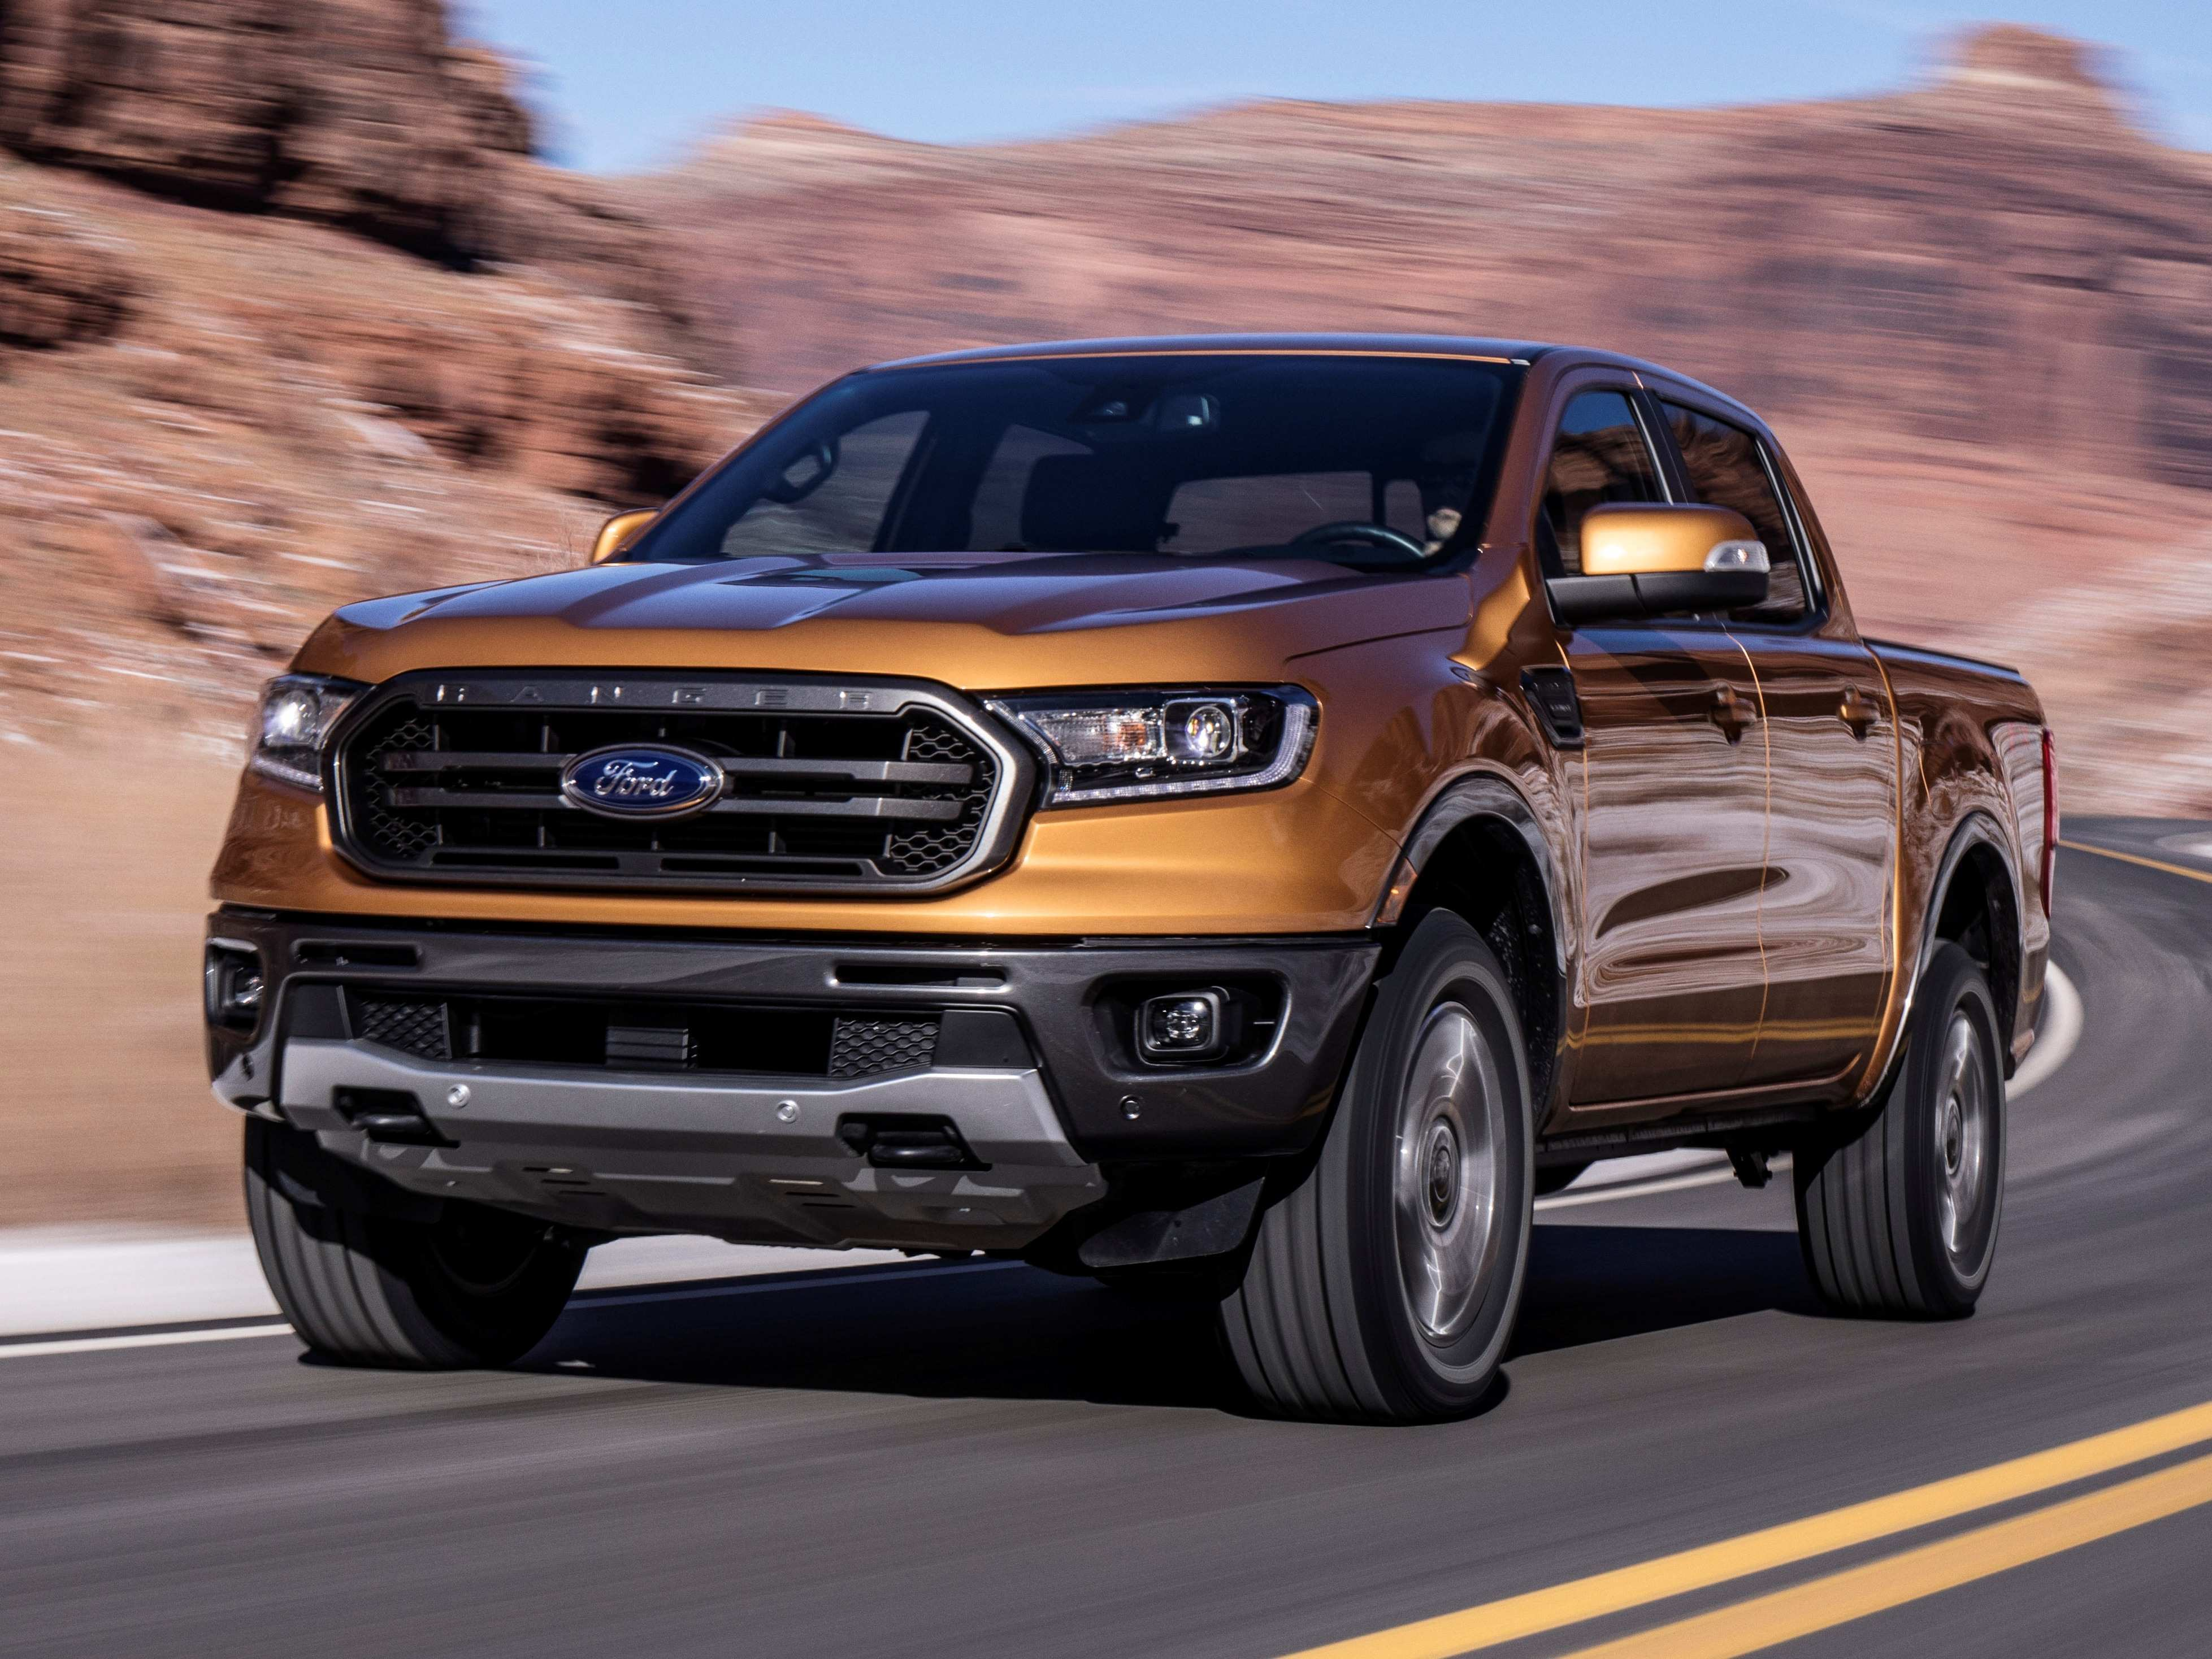 48 All New 2020 Ford Ranger Specs Photos